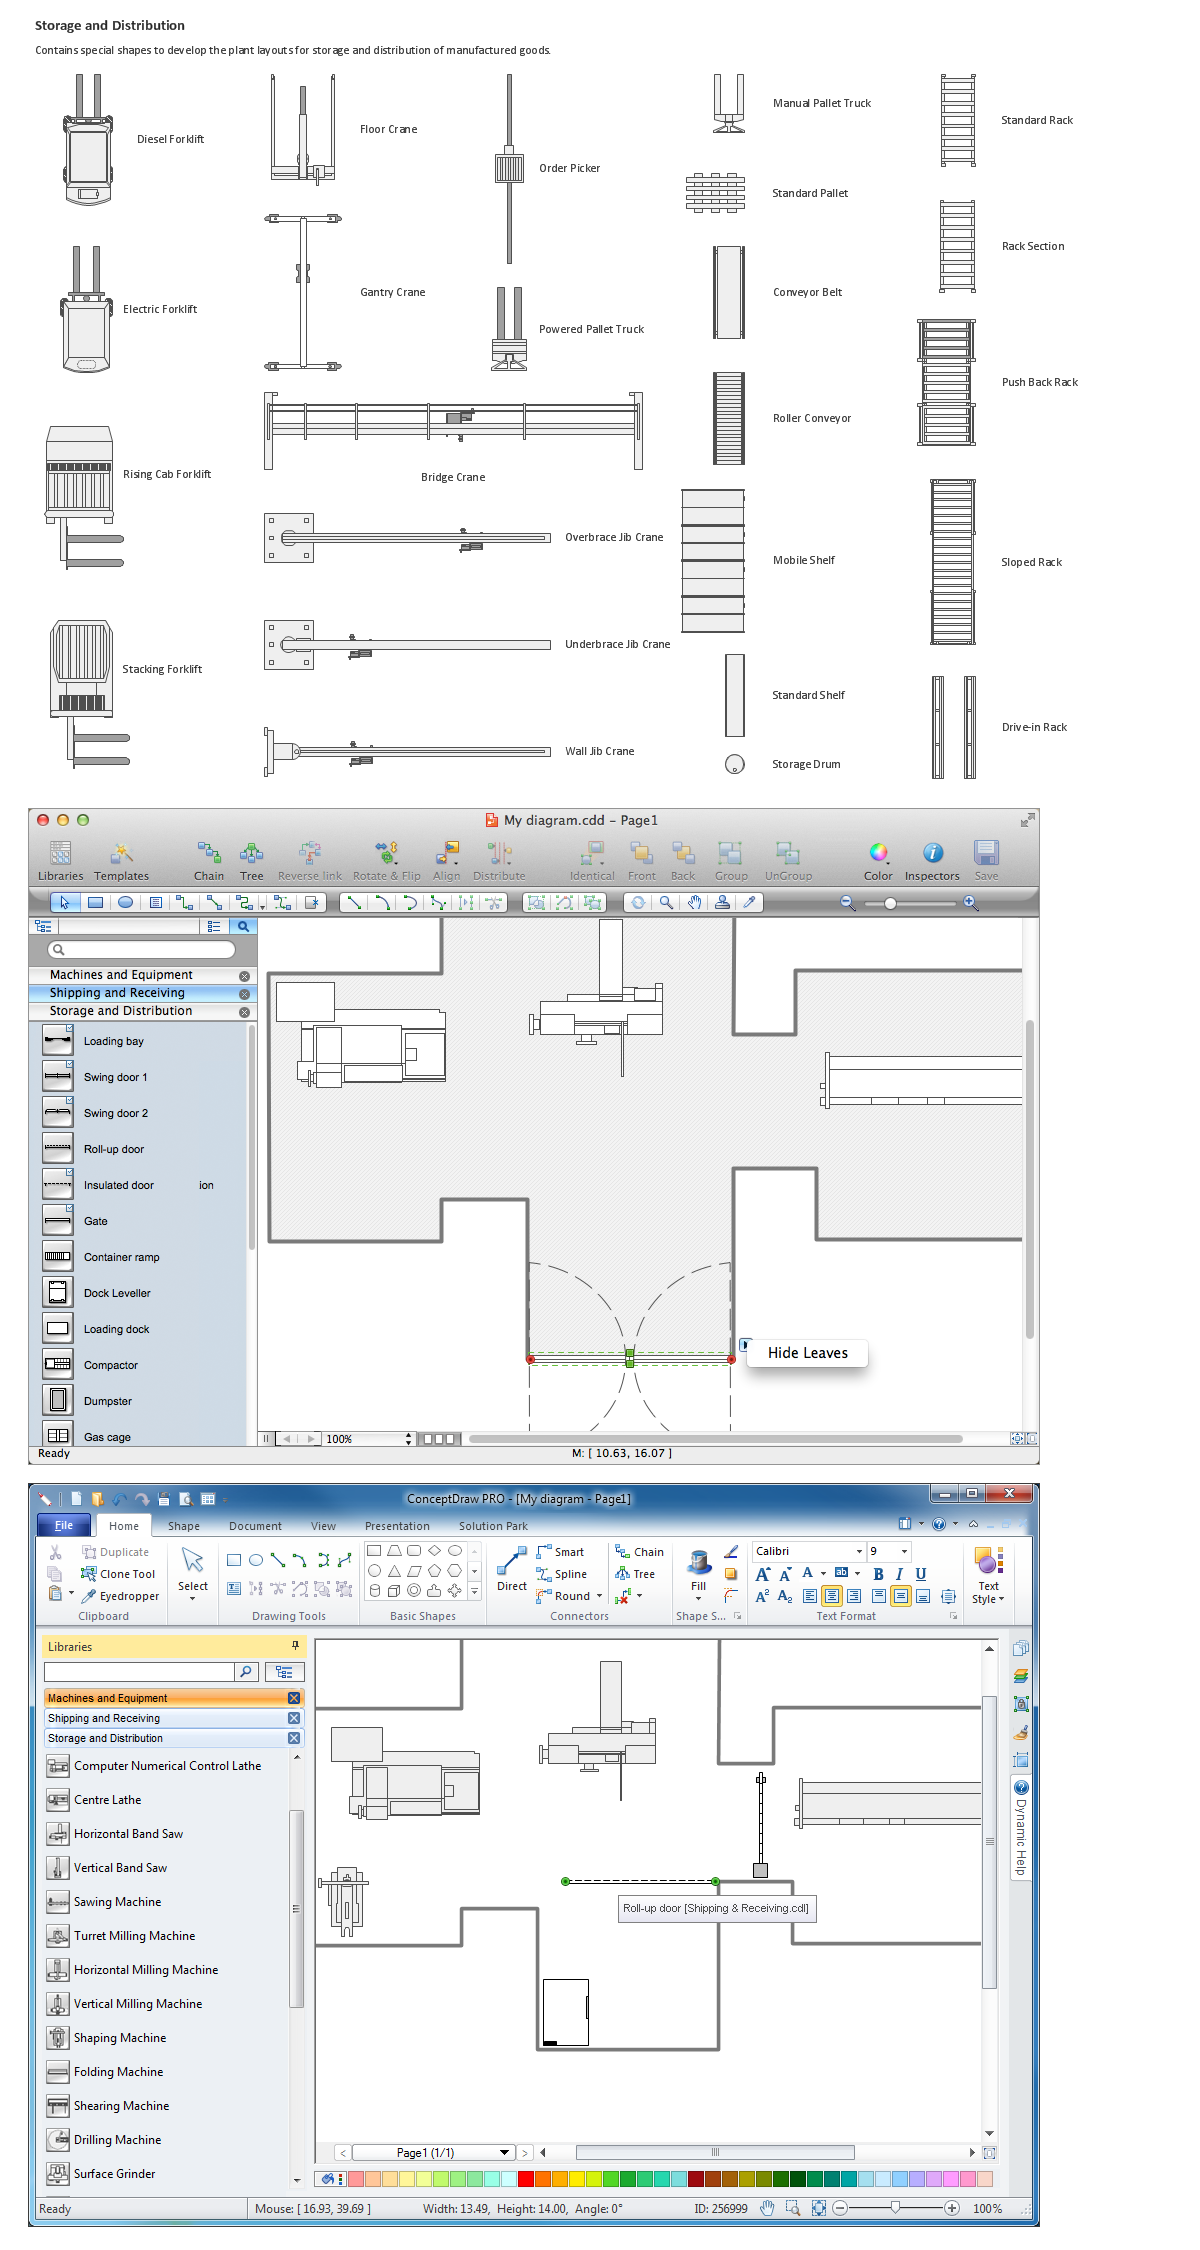 Building drawing software. Design elements of storage and distribution plant layout plans.